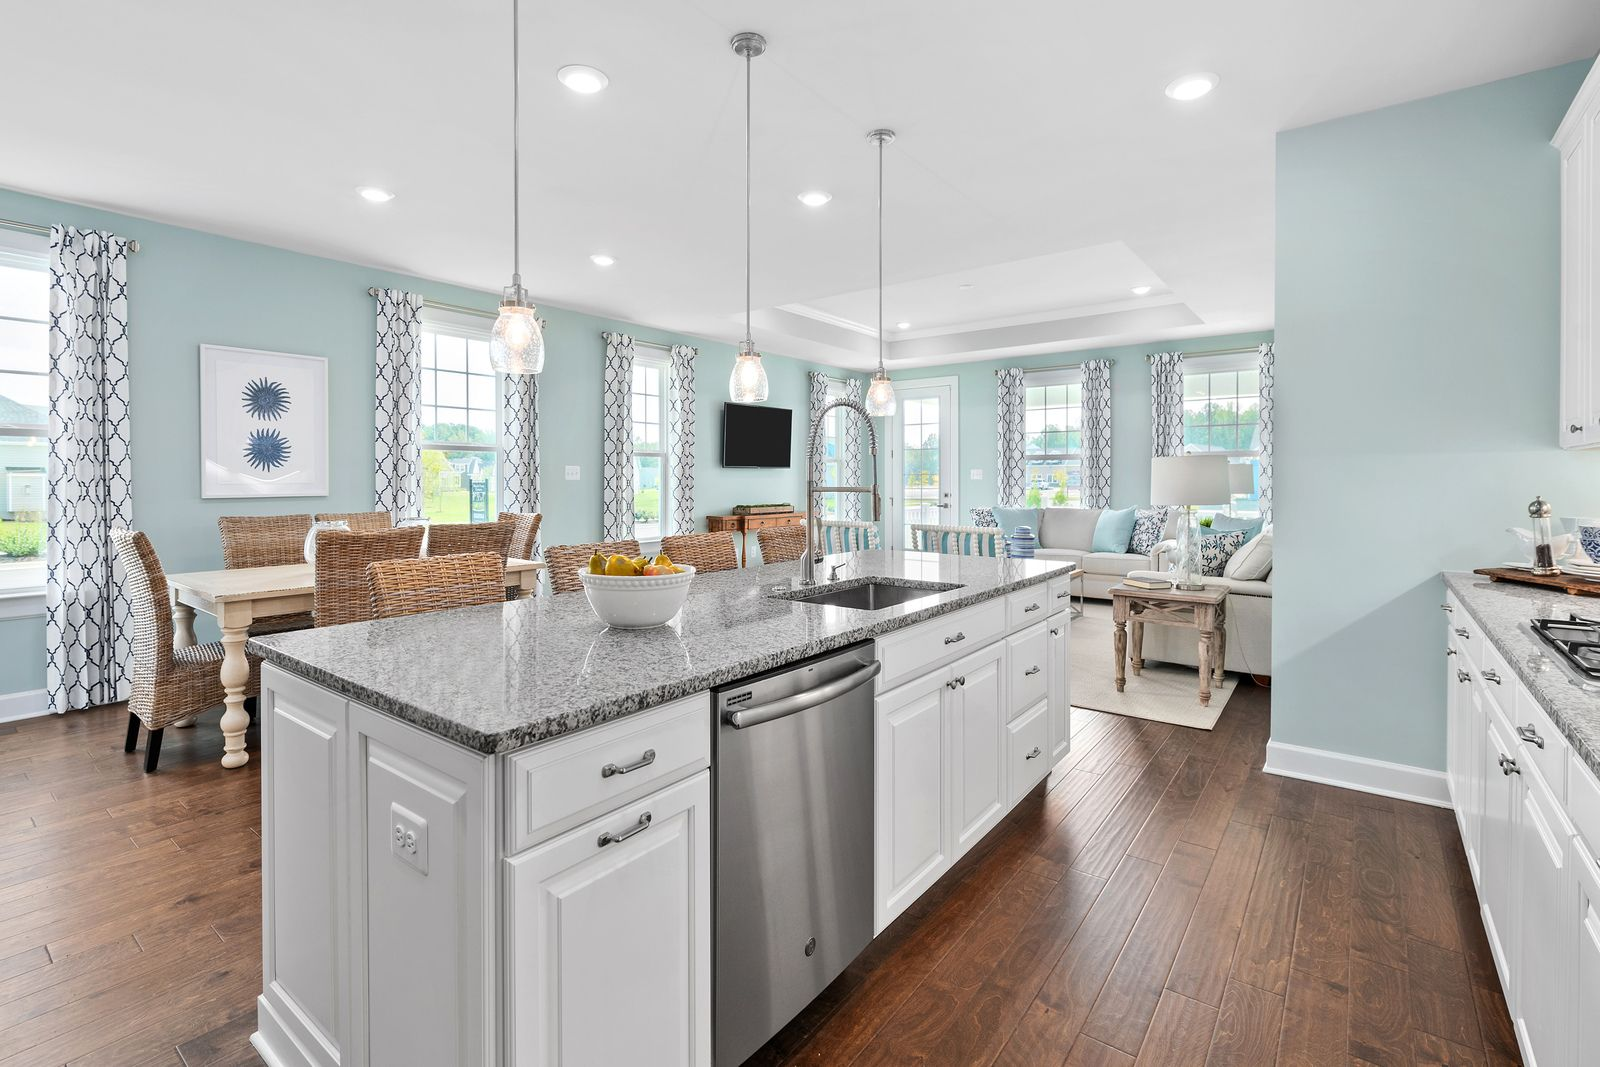 Kitchen featured in the Clarkson By NVHomes in Philadelphia, PA